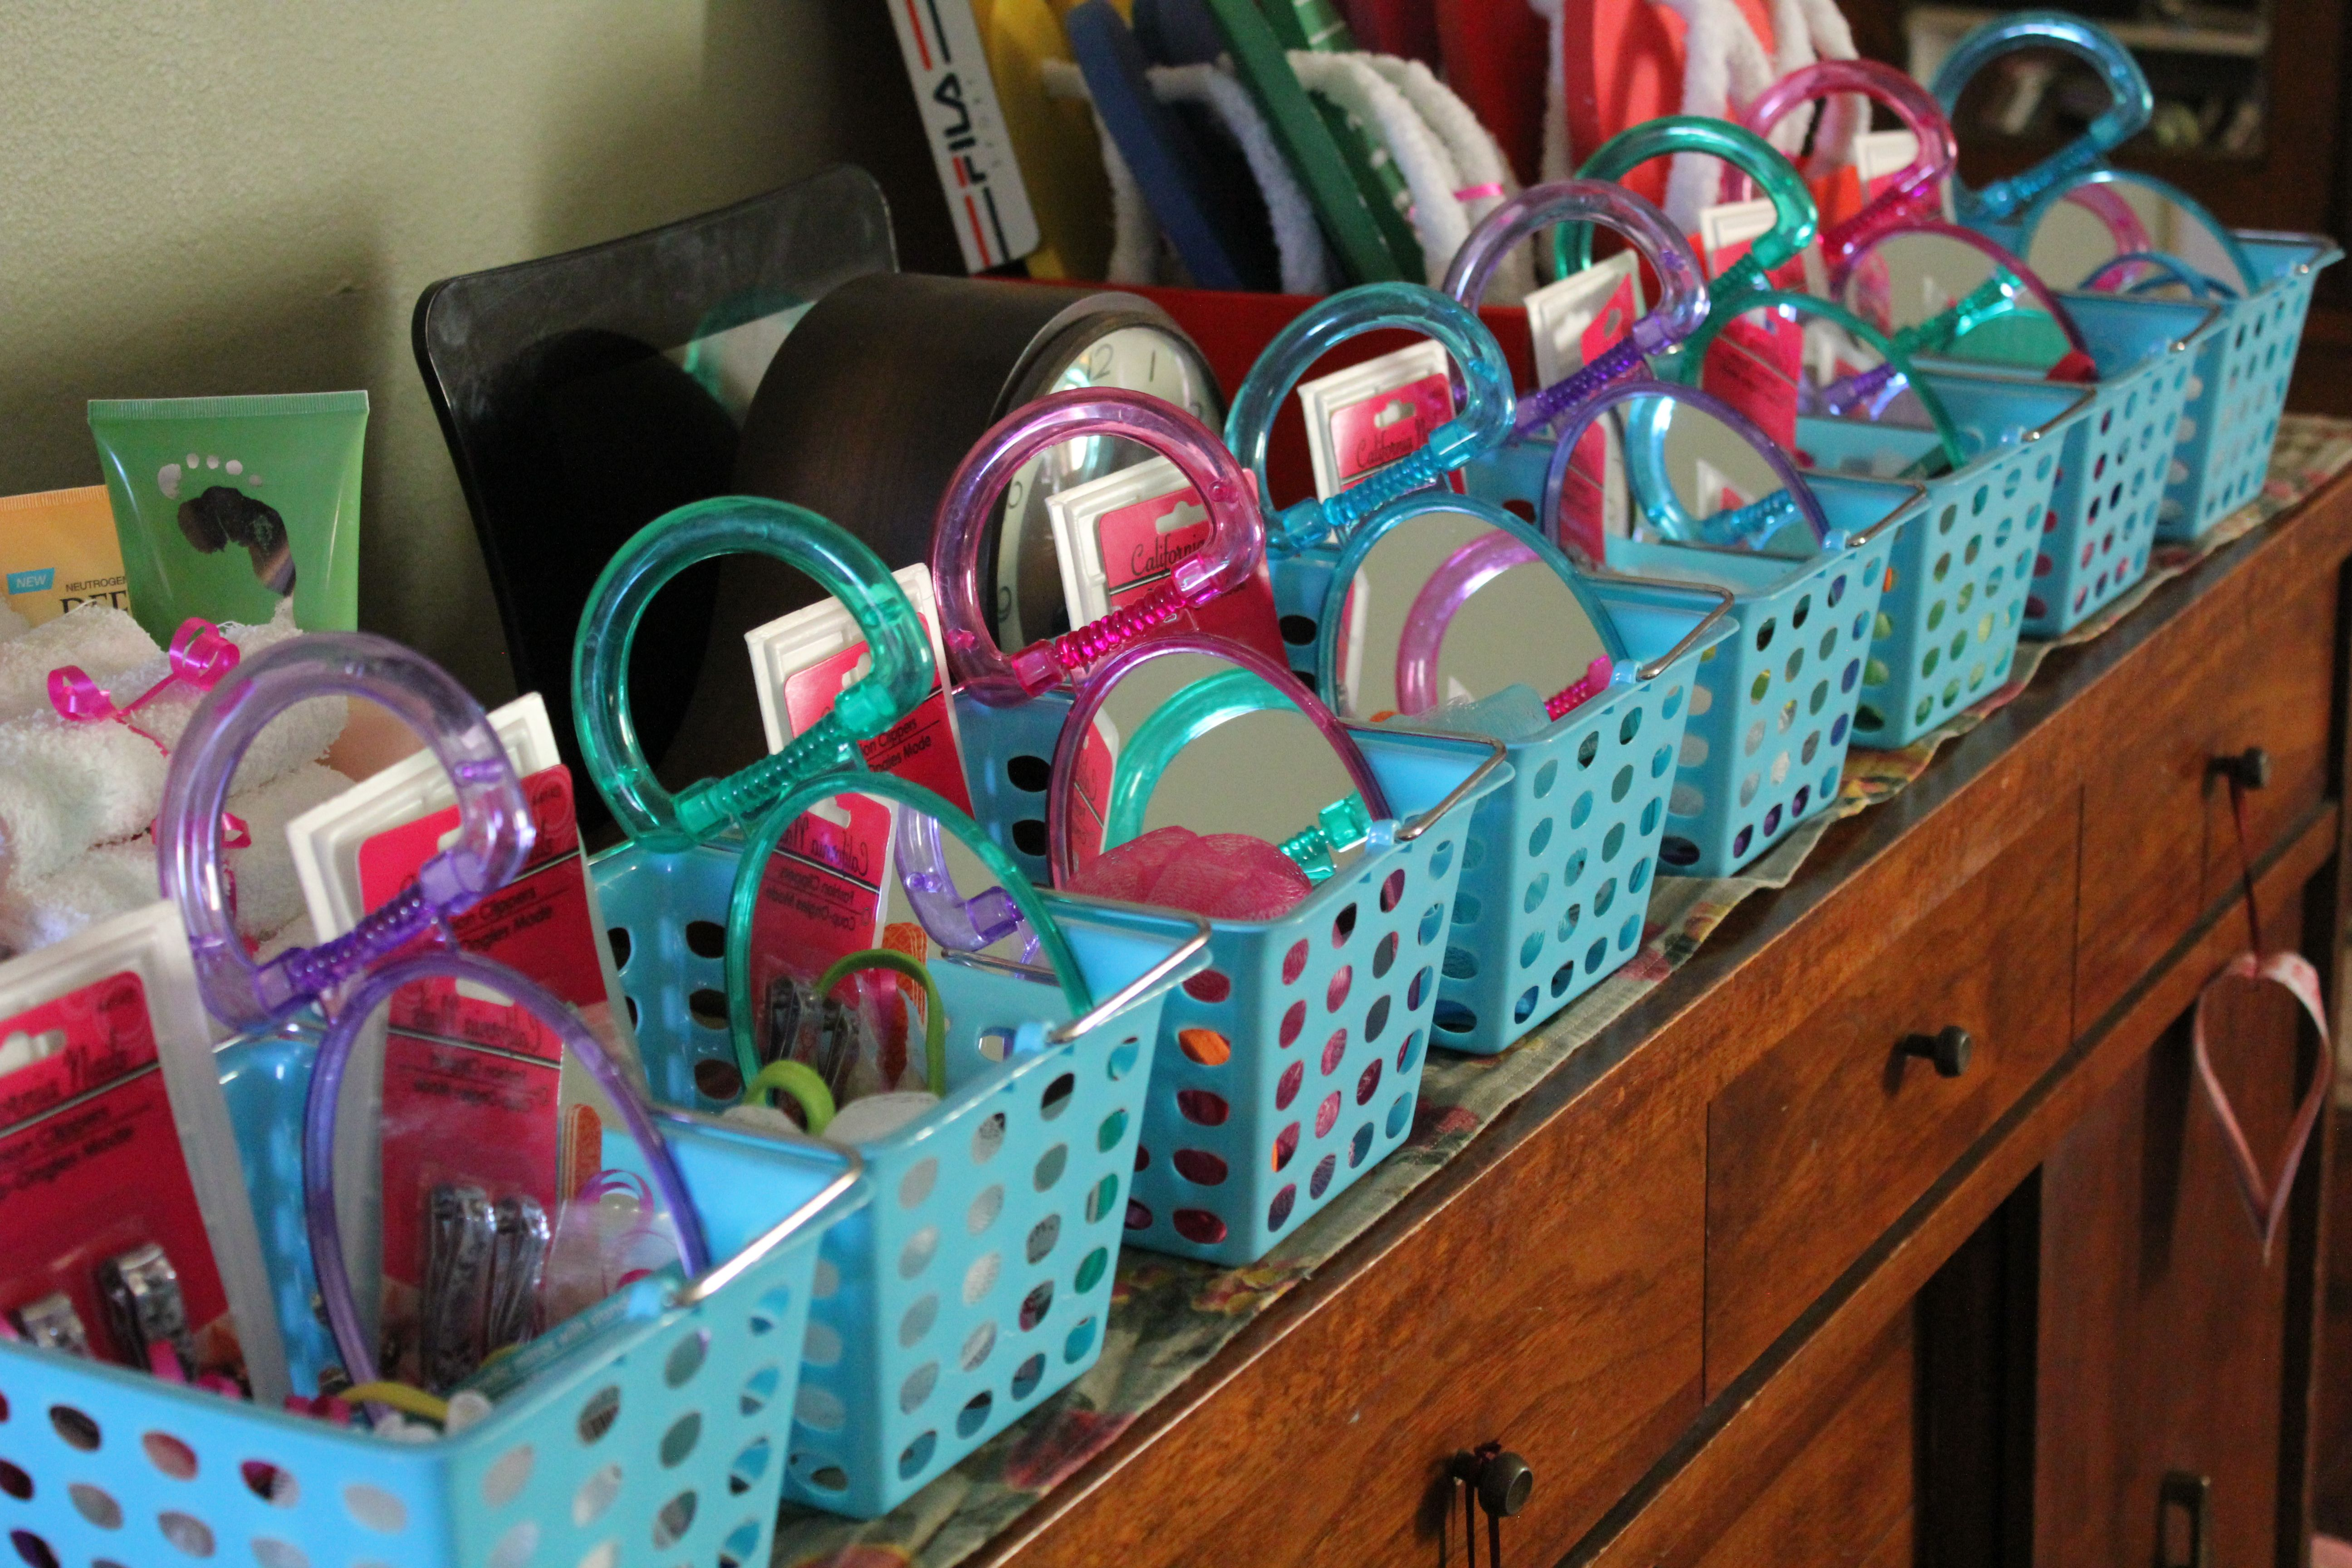 Spa Day Birthday Party Baskets Filled With Spa Related